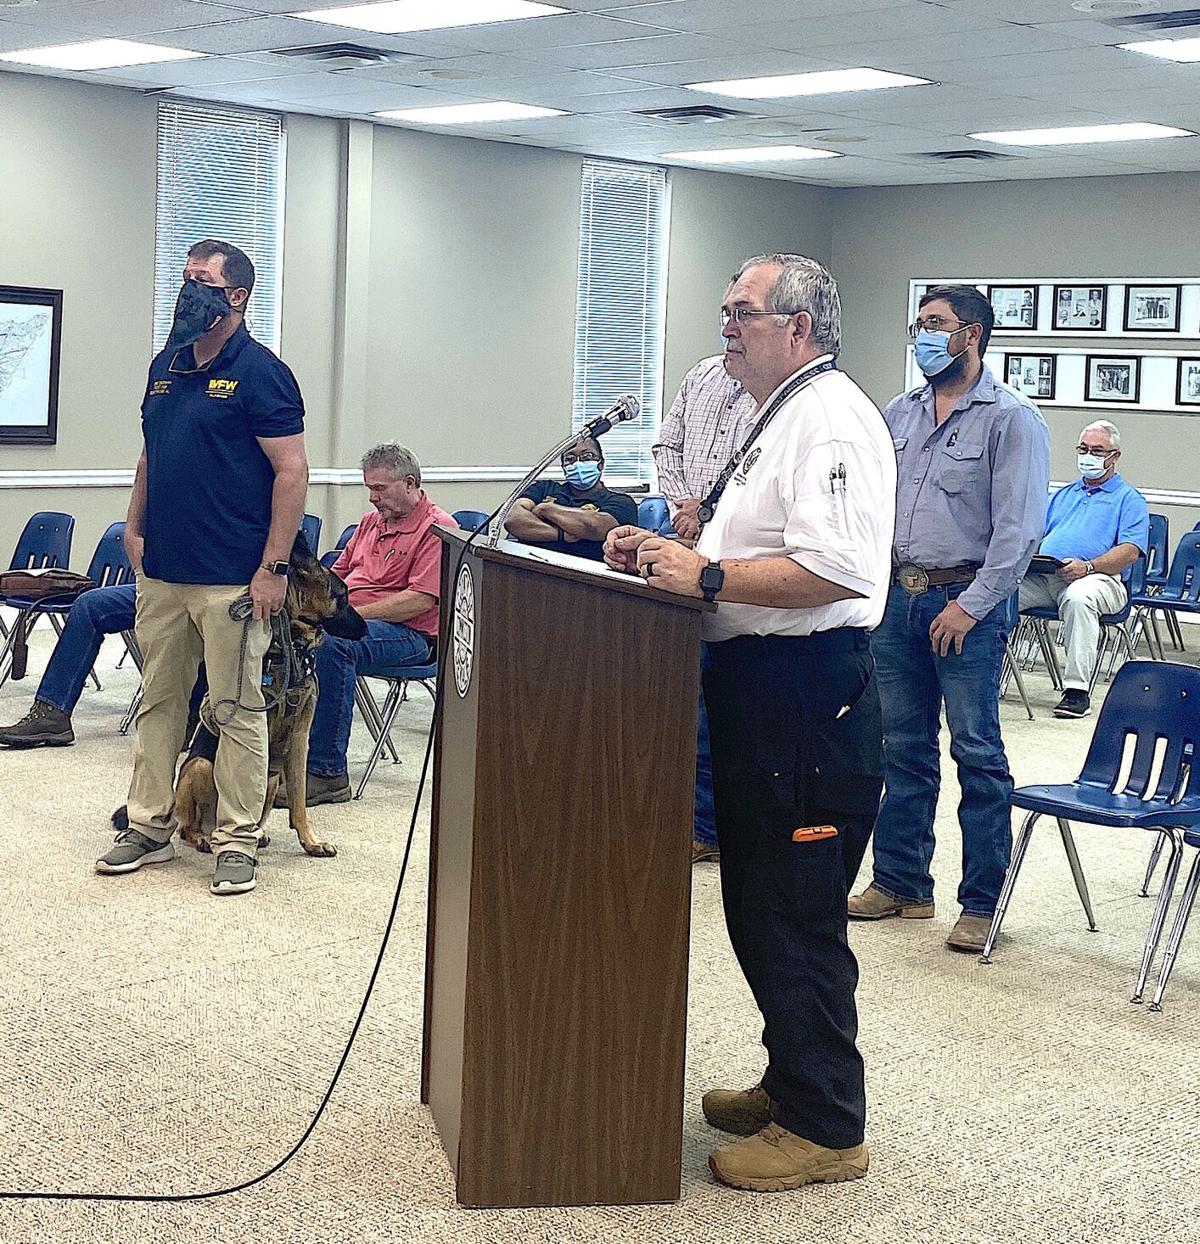 VFW, Agri-Business Center recognized for assistance during pandemic